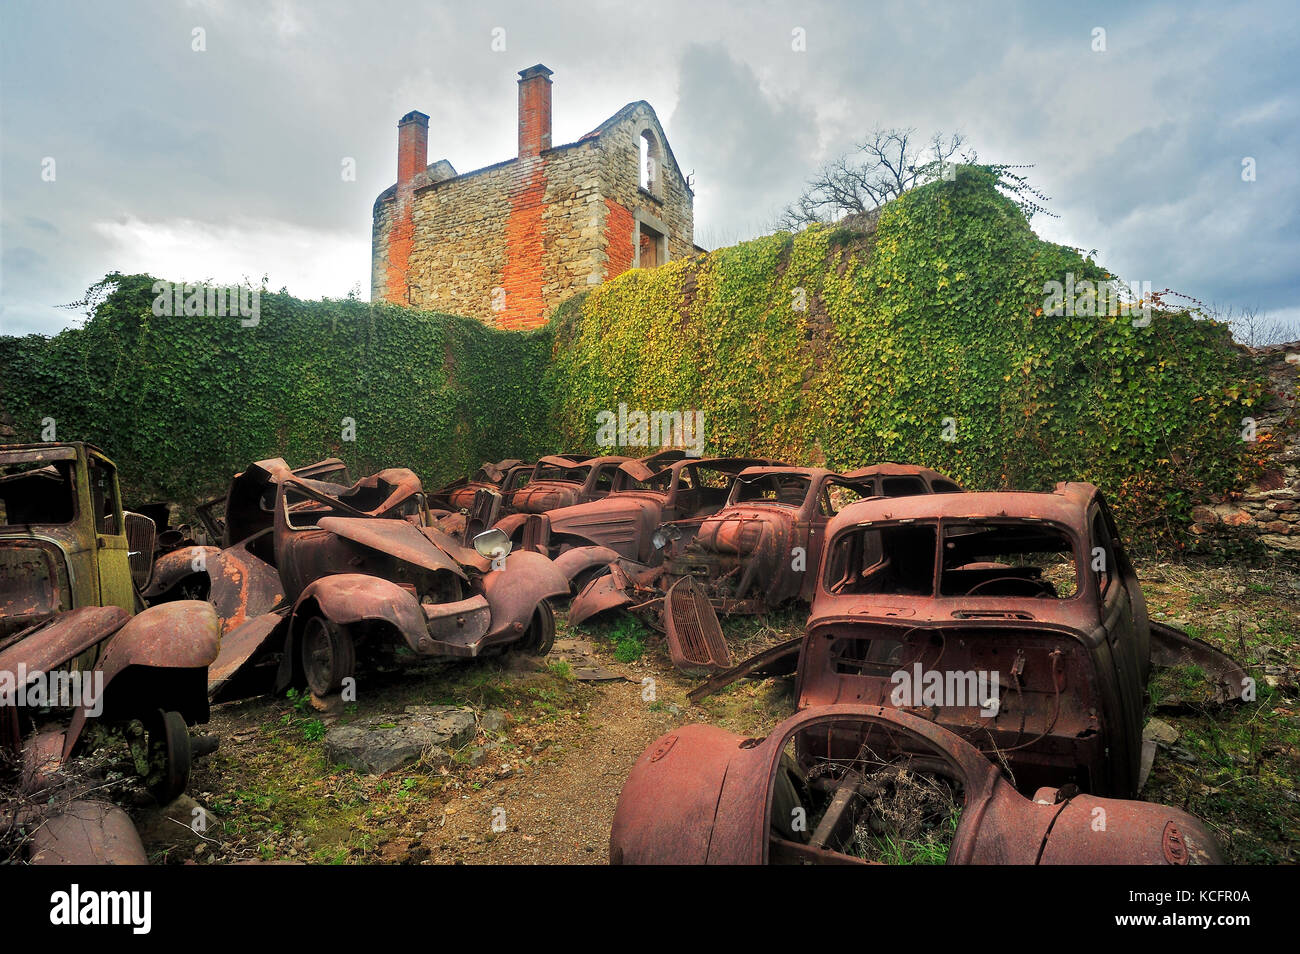 automobile remains, Oradour-sur-Glane, Haute-Vienne Department, Limousin, France - Stock Image